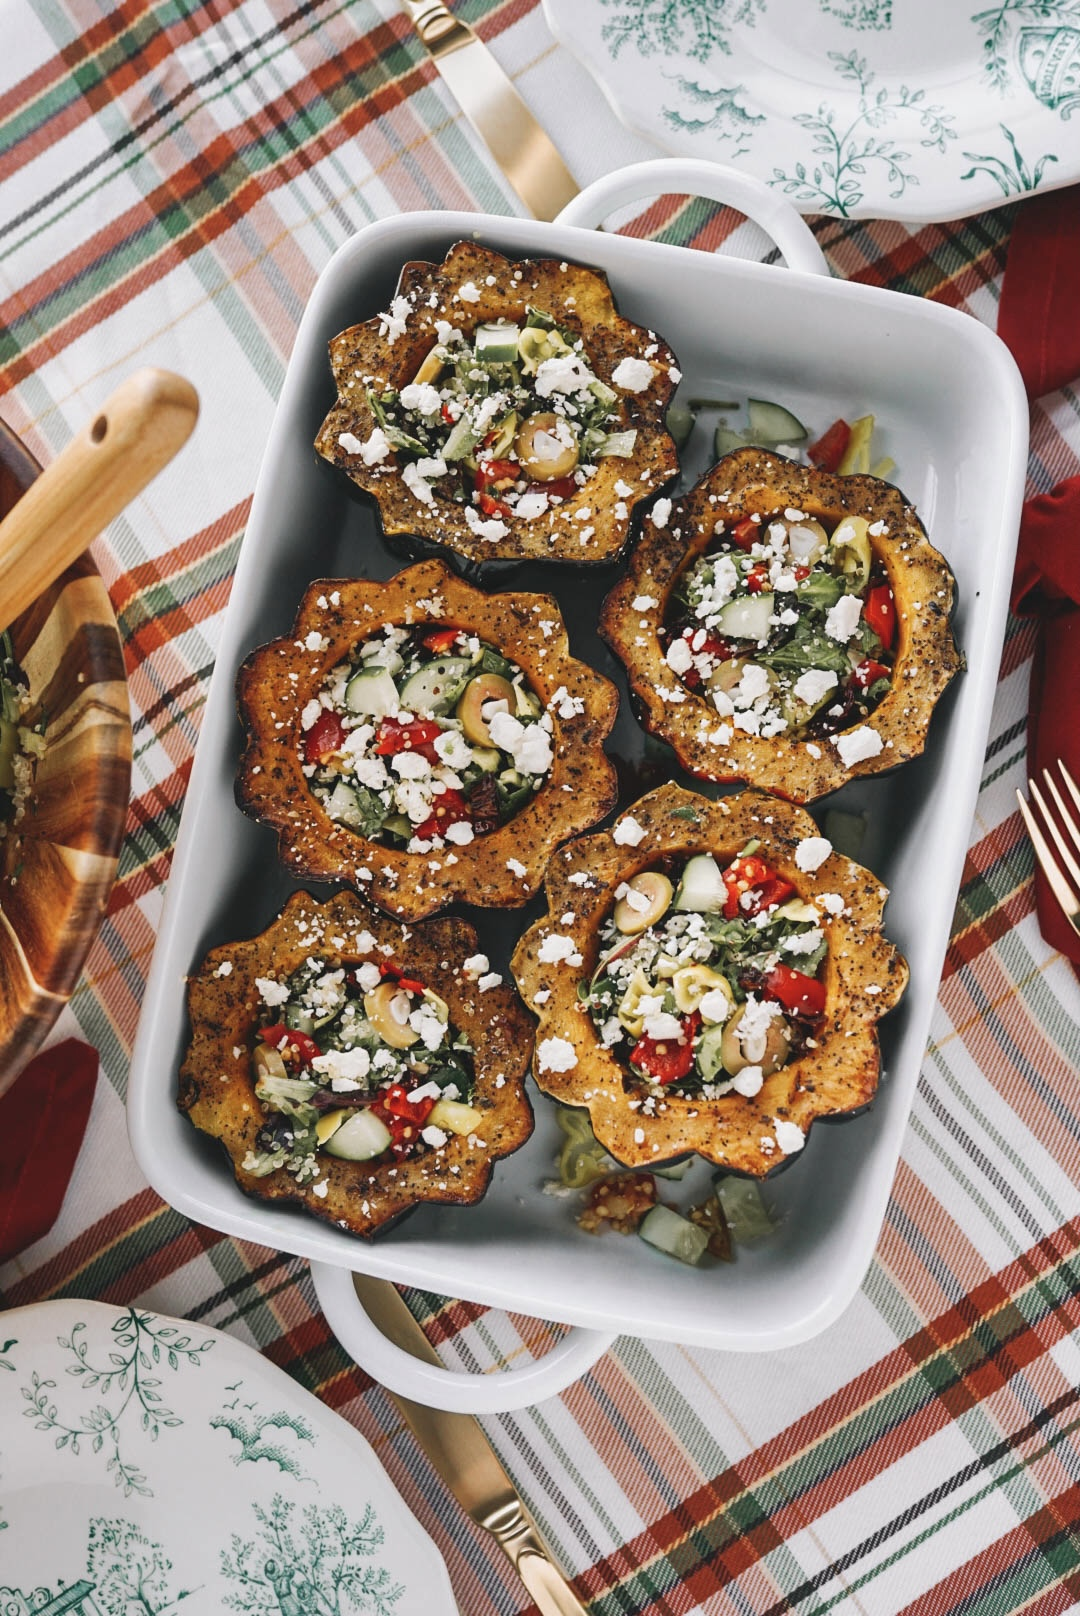 halved acorn squash roasted and stuffed with quinoa salad in white baking dish on plaid tablecloth